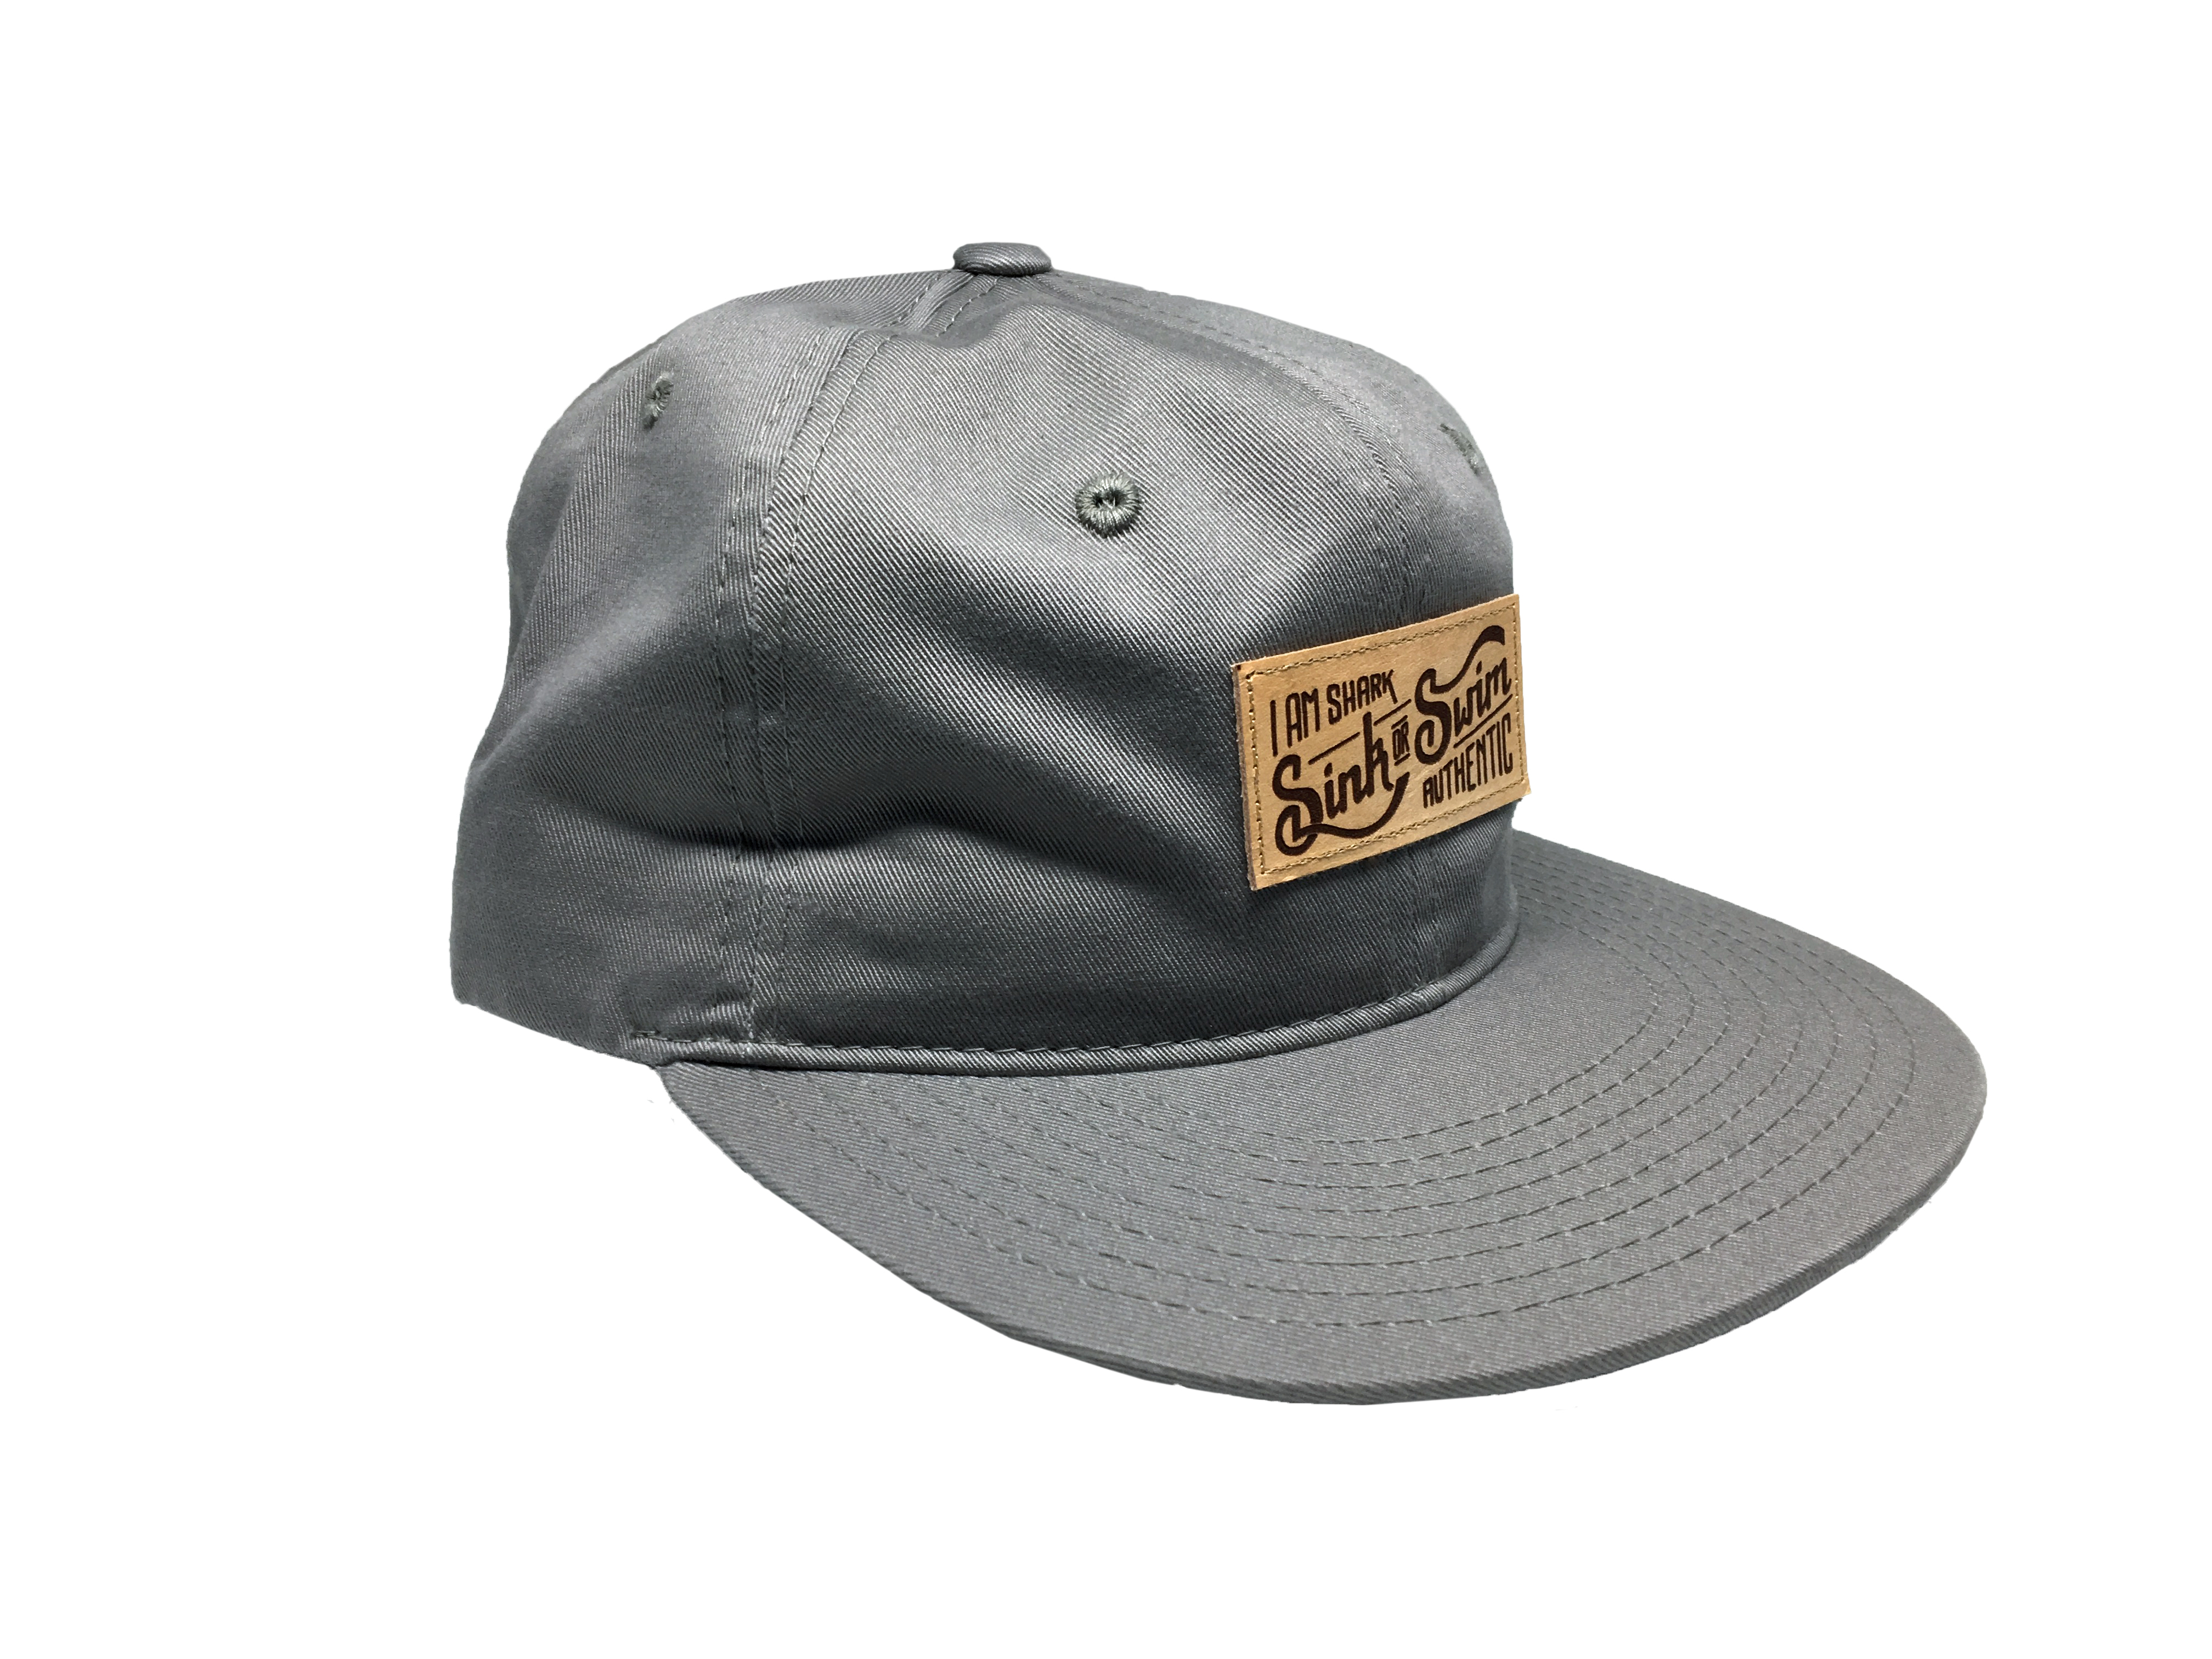 Relaxed Sink or Swim Snapback - Grey